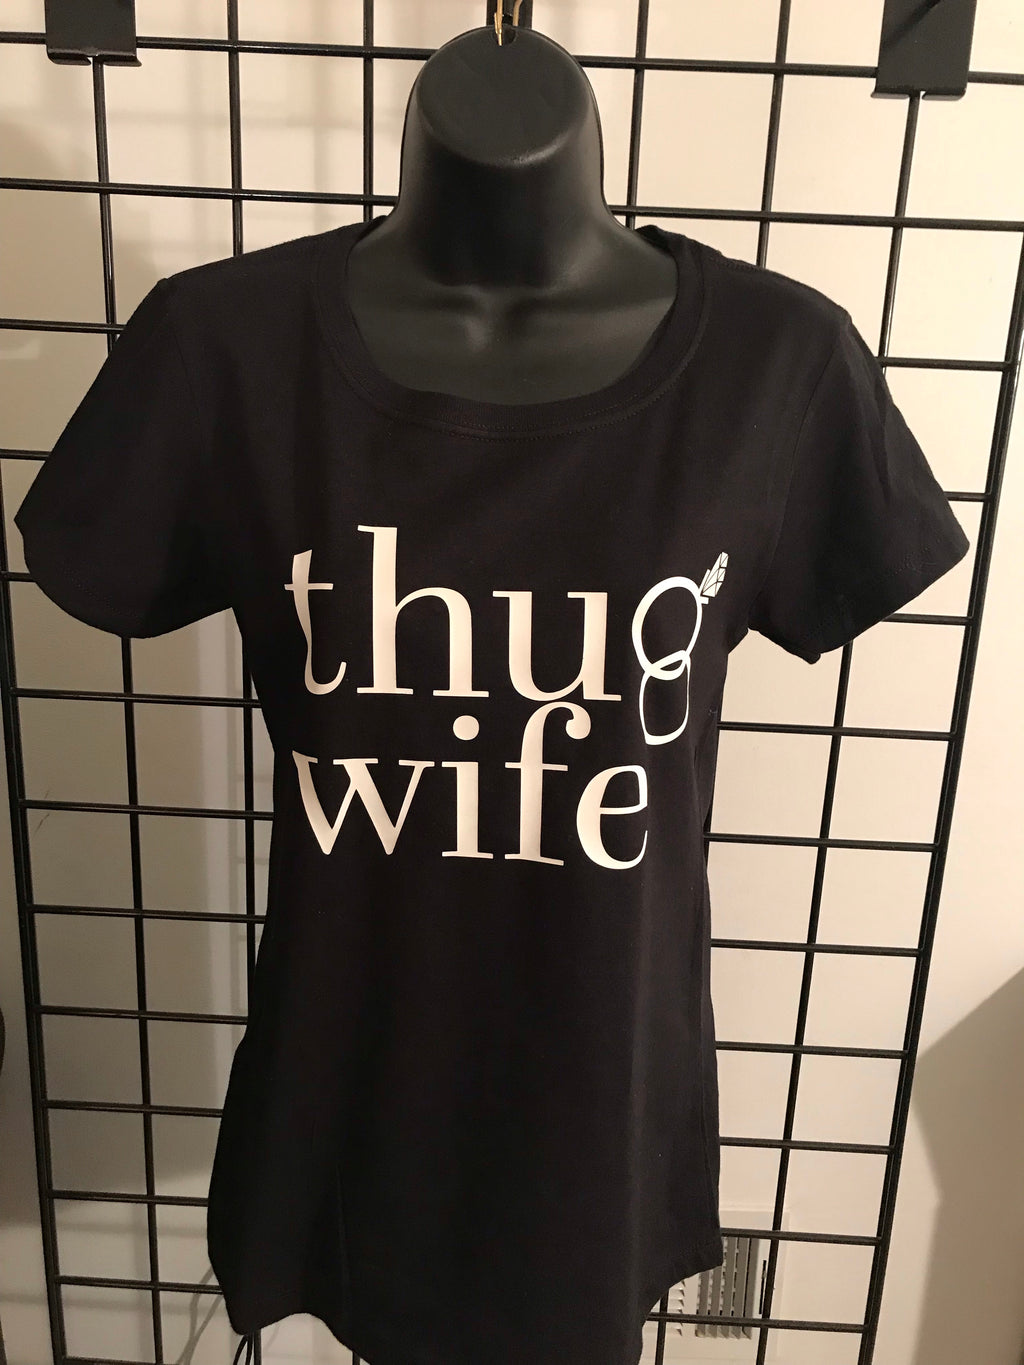 Thug Wife Women's Fitted Tee - Closeout